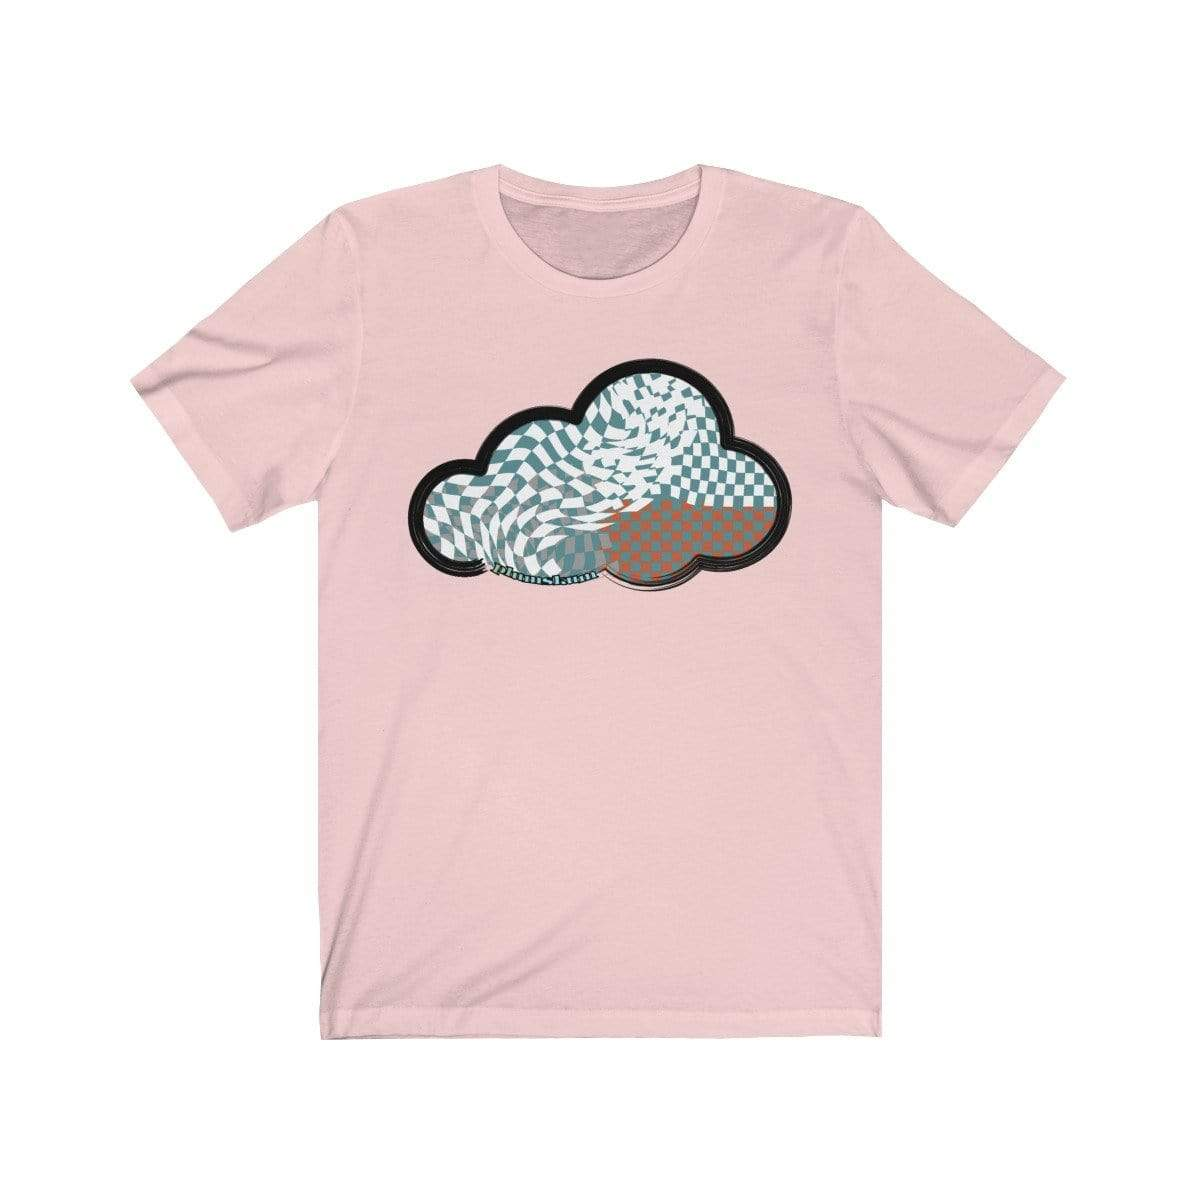 Printify T-Shirt Soft Pink / M Checker Art Clouds T-Shirt